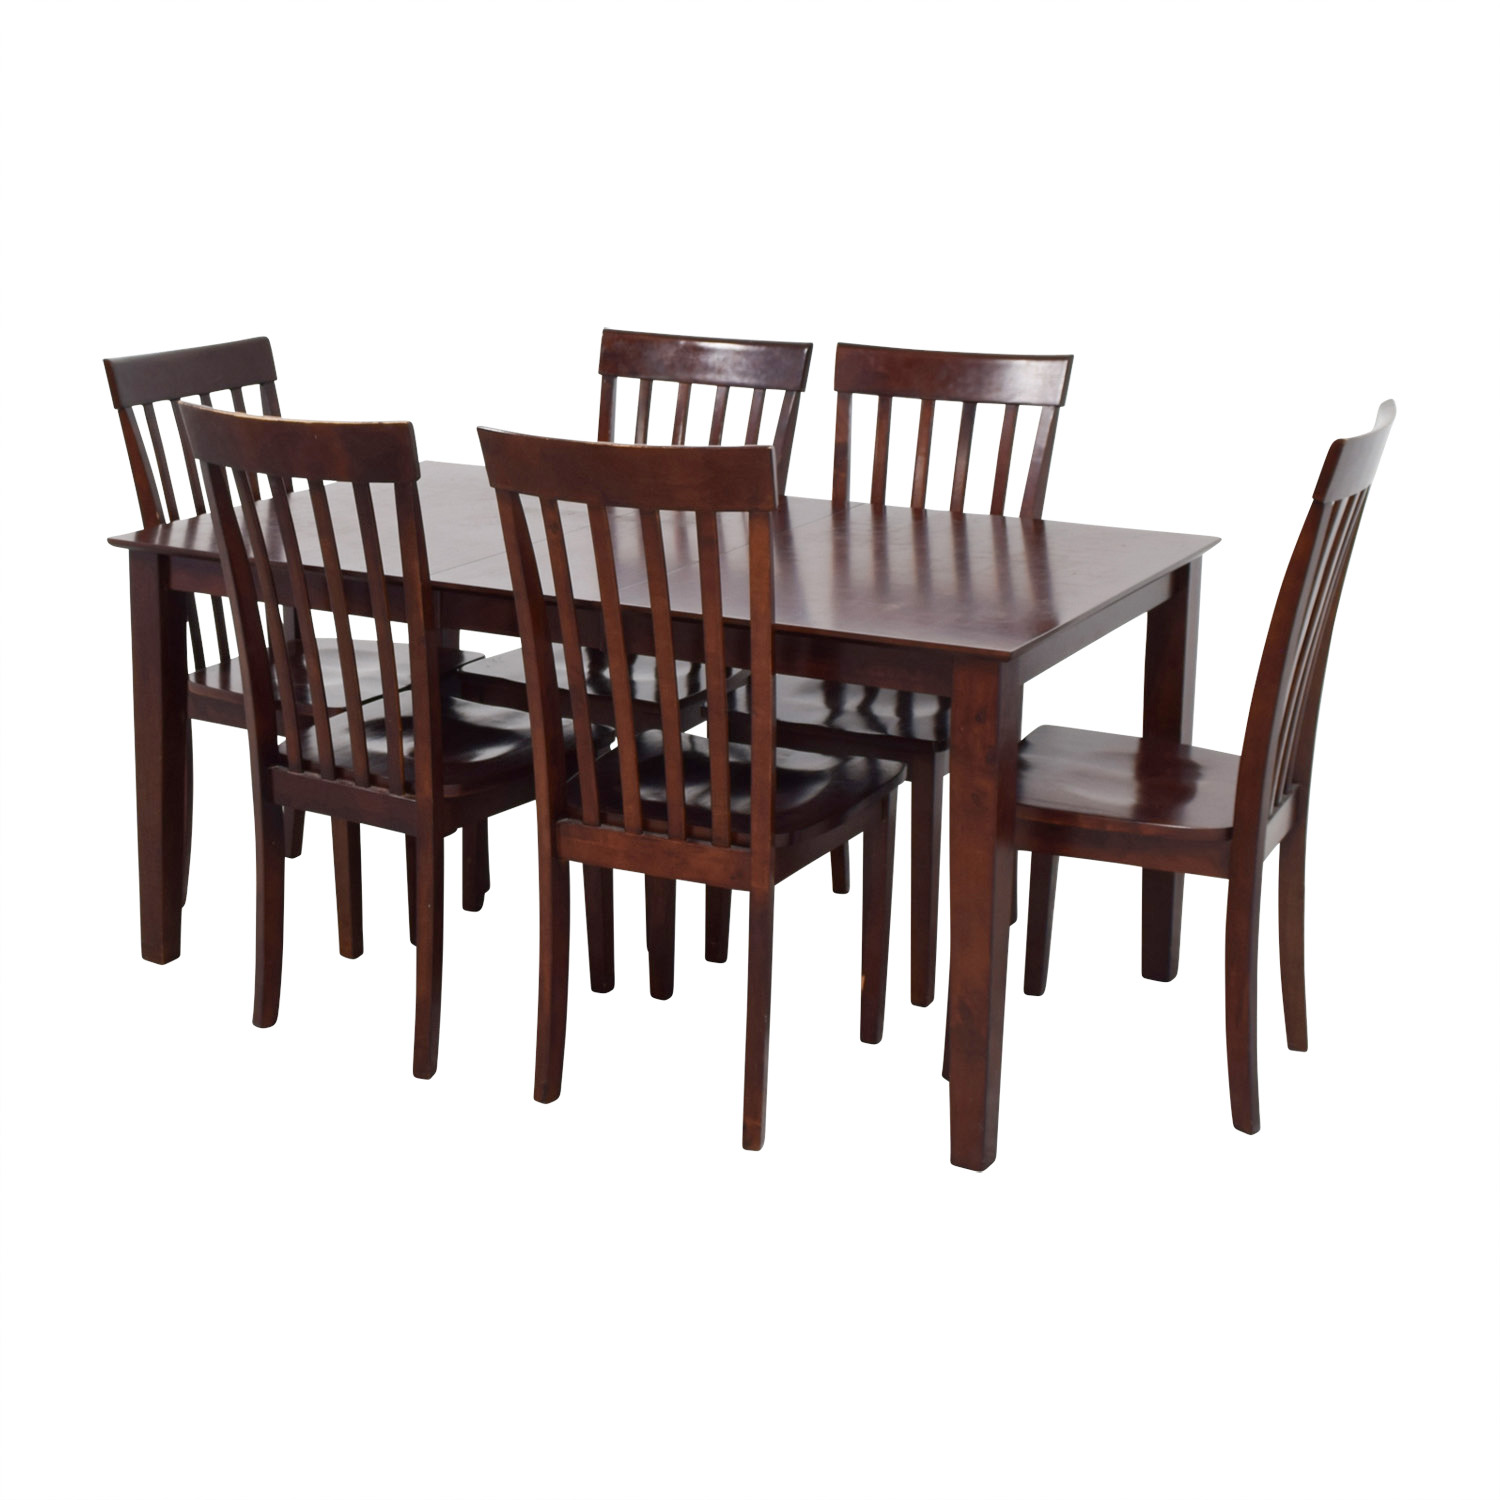 89 off bob 39 s furniture bob 39 s furniture dining room table and chairs tables. Black Bedroom Furniture Sets. Home Design Ideas